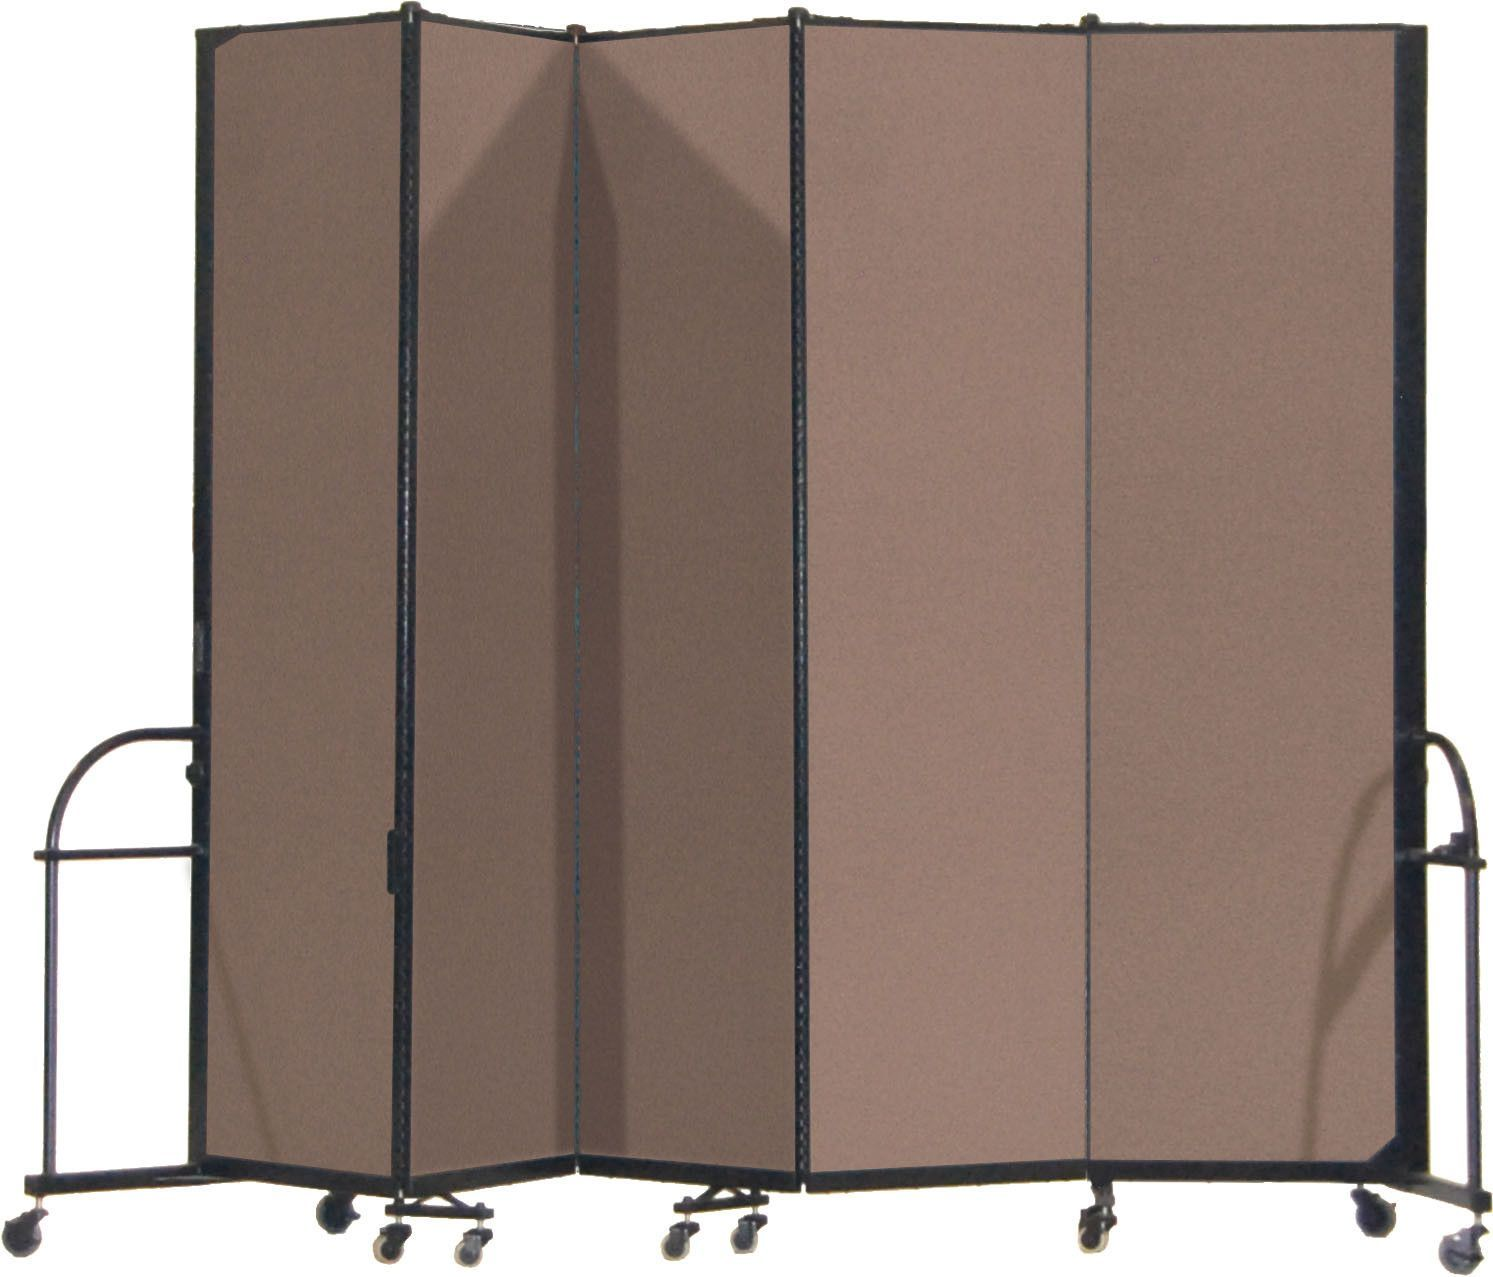 Page not found screenflex portable room iders - Screenflex Heavy Duty Five Panel Portable Room Divider Color Oatmeal